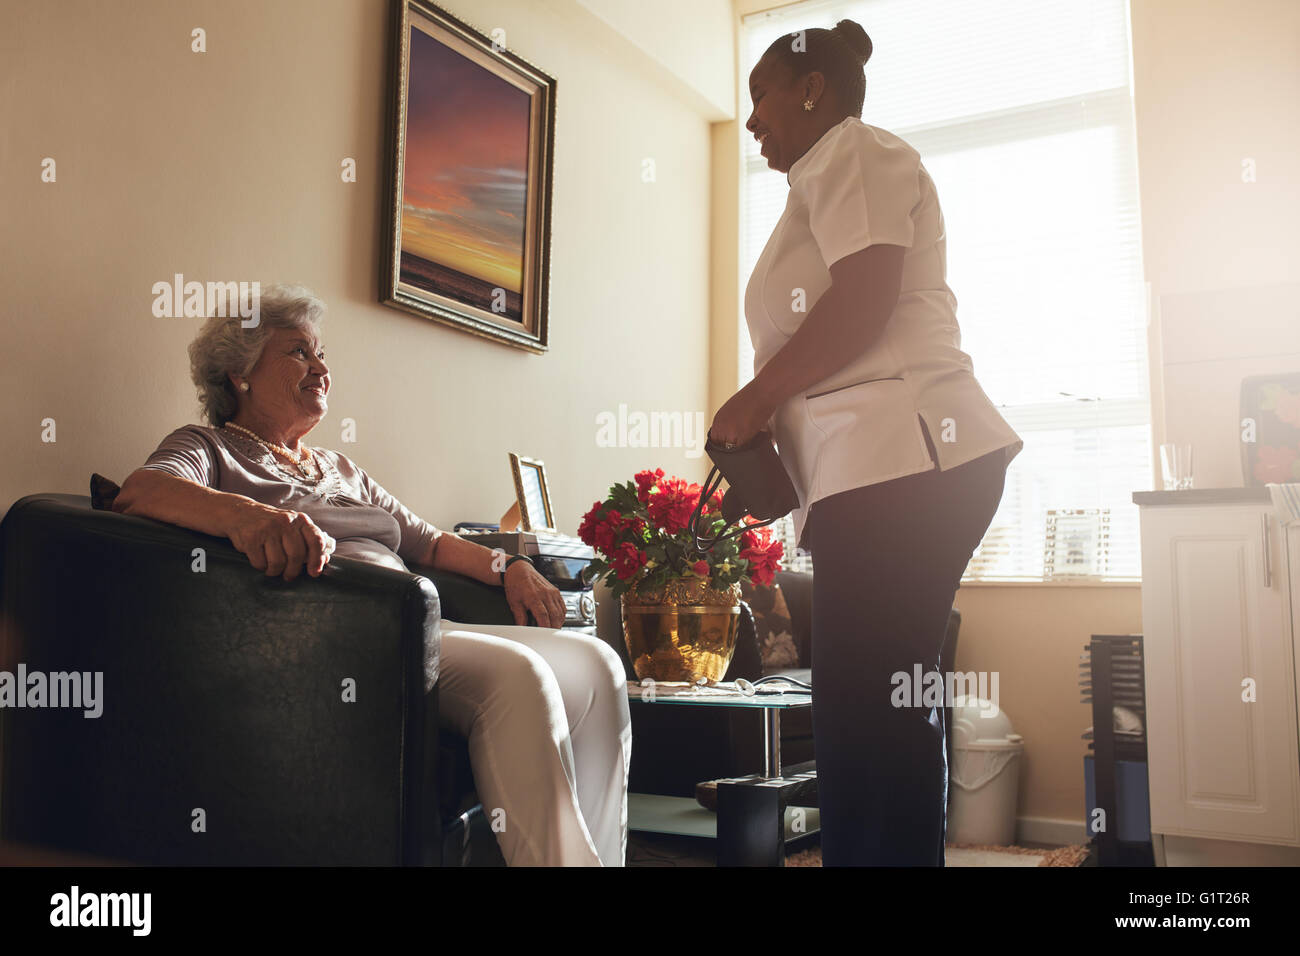 Senior woman sitting on a chair at home with female caregiver standing by. Female nurse visiting senior patient - Stock Image